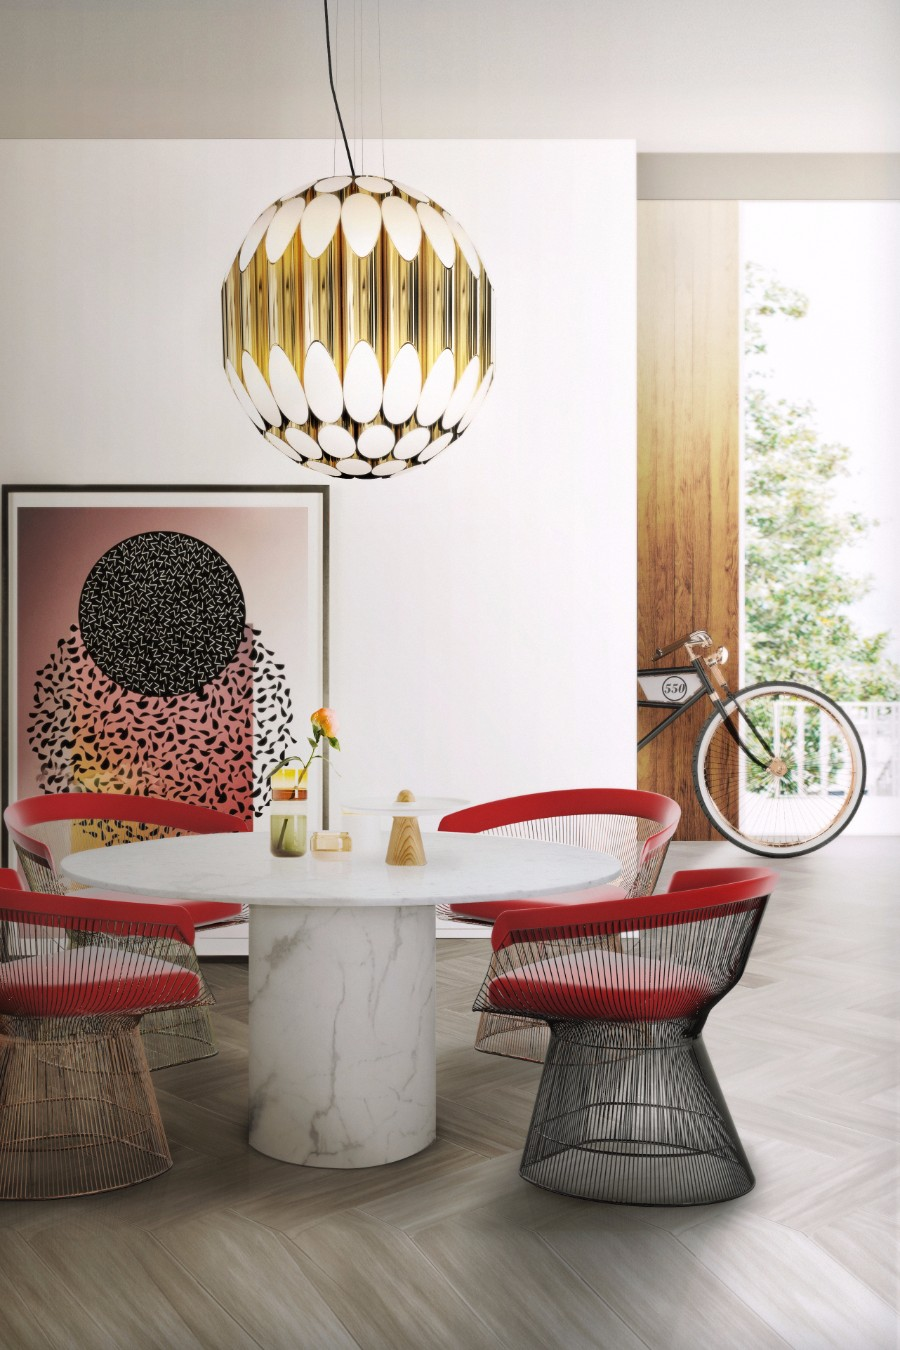 dining room dining room 25 Dazzling Modern Dining Rooms delightfull kravitz modern midcentury sphere suspension lamp 01 1